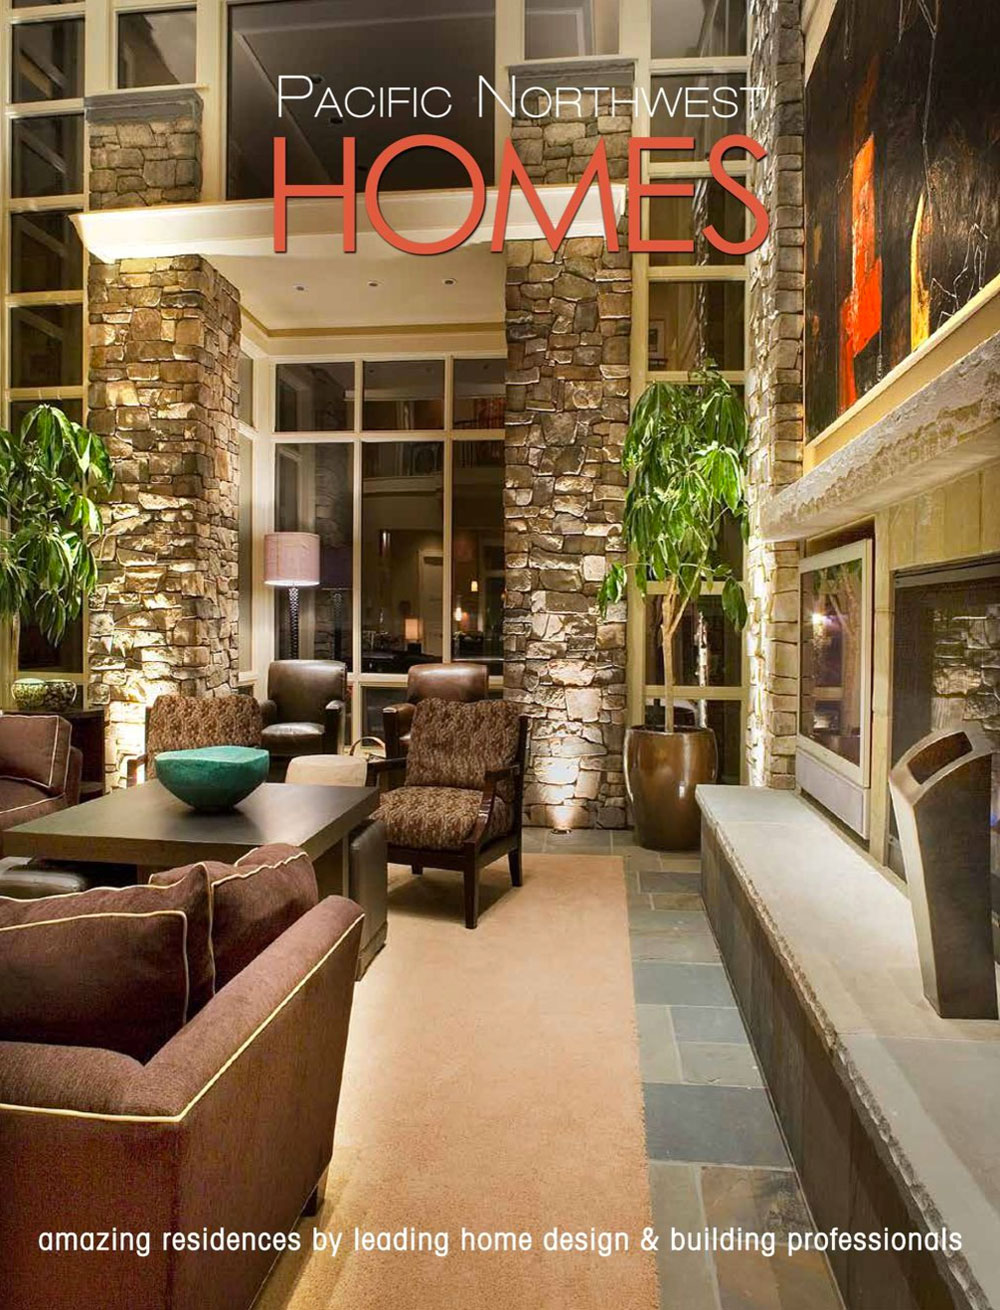 Pacific Northwest Homes - The publication features luxury homes designed and built by the region's leading architects, custom builders and interior designers in the Pacific Northwest.View DTF Design Feature in Pacific Northwest Homes.Publication: Panache PartnersYear: 2017